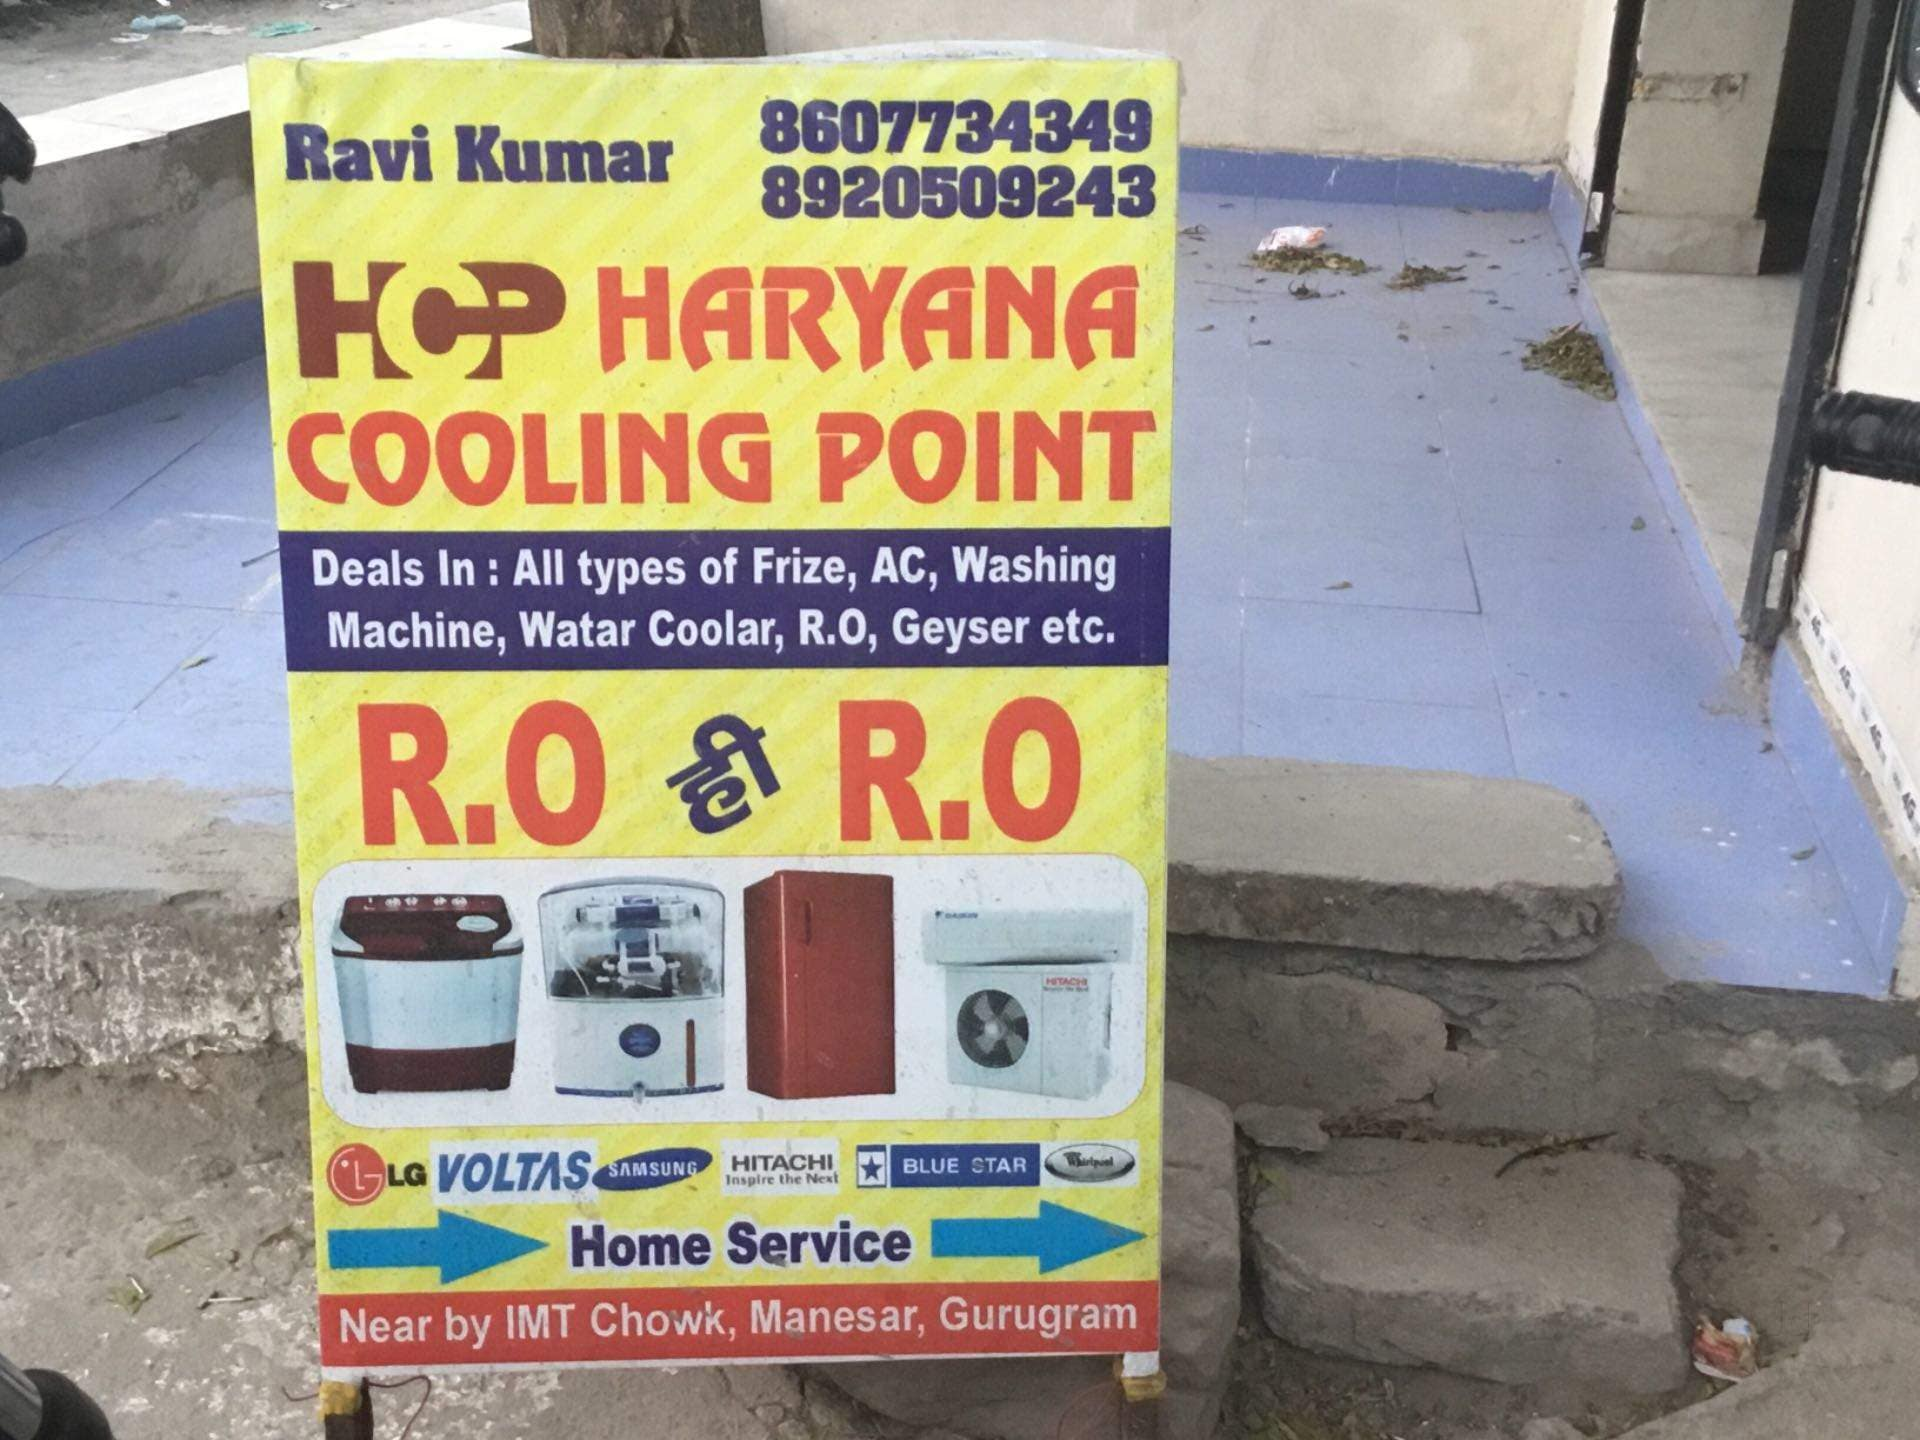 Top AC Repair Services in Pataudi - Best Air Conditioning Repair